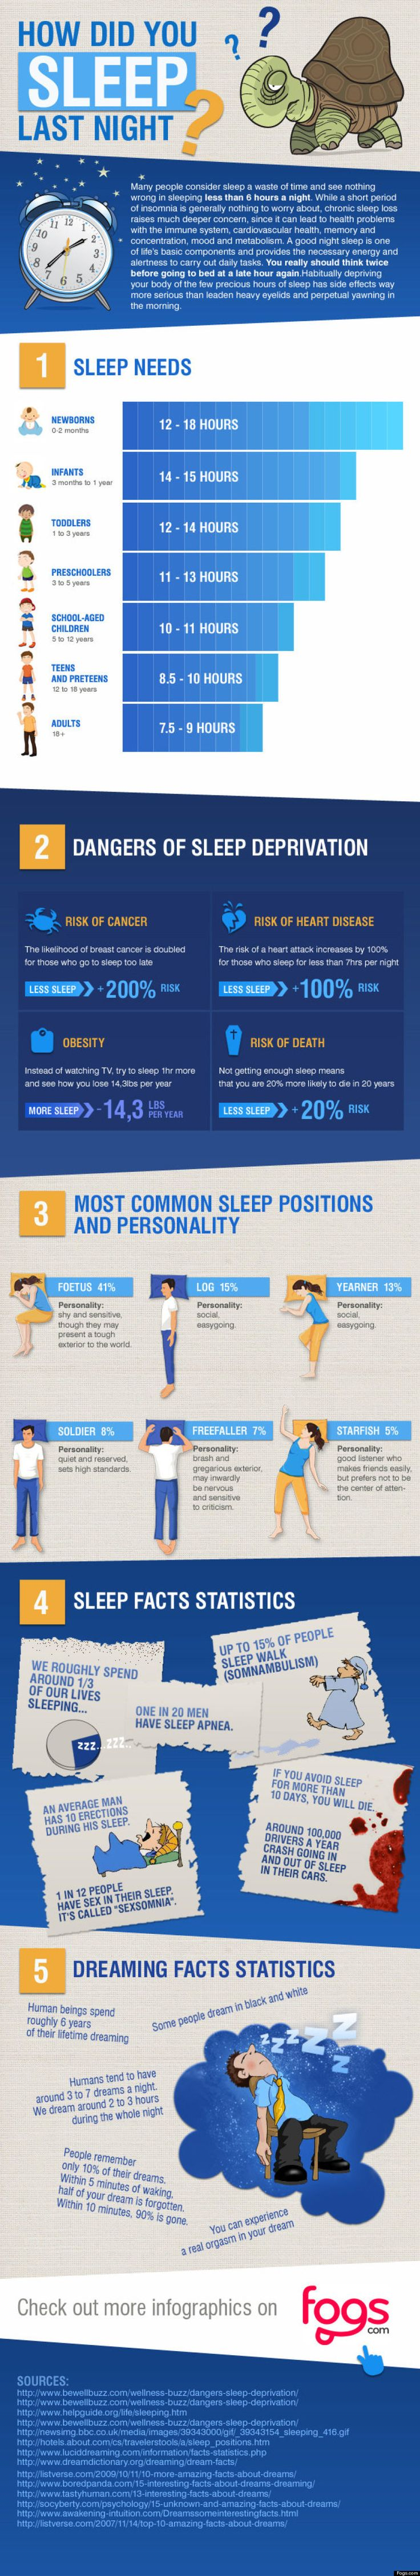 All About Sleep - iNFOGRAPHiCs MANiA